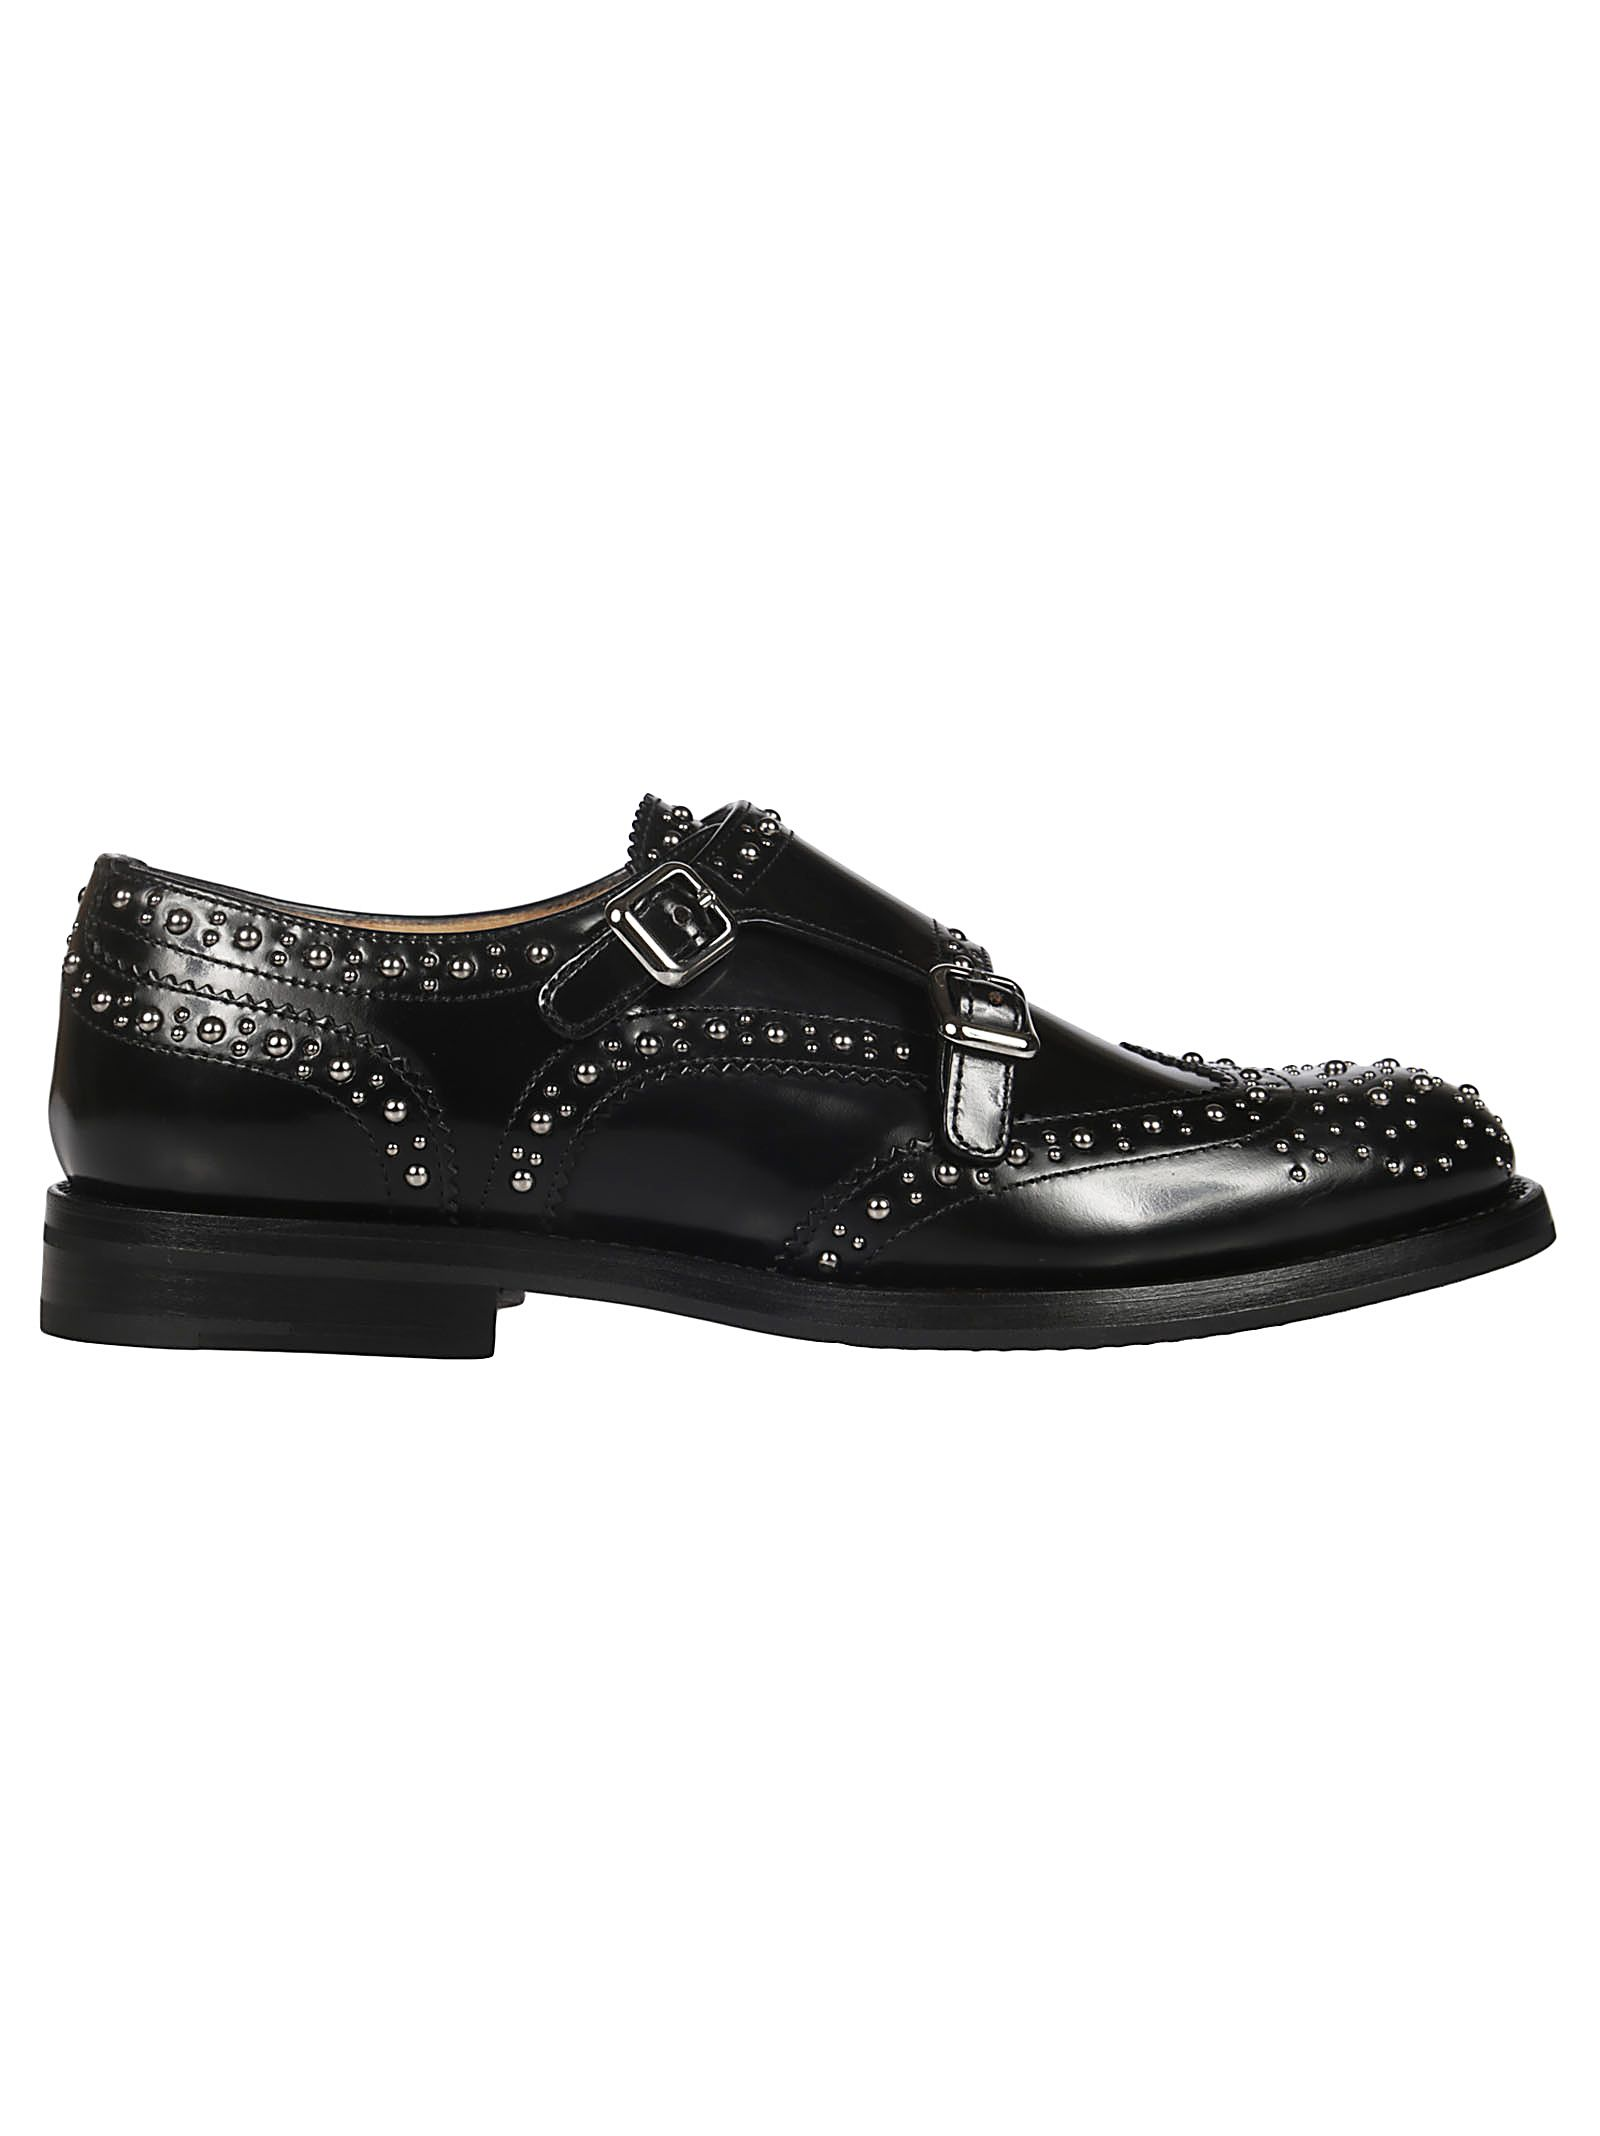 Studded Monk Shoes, Black